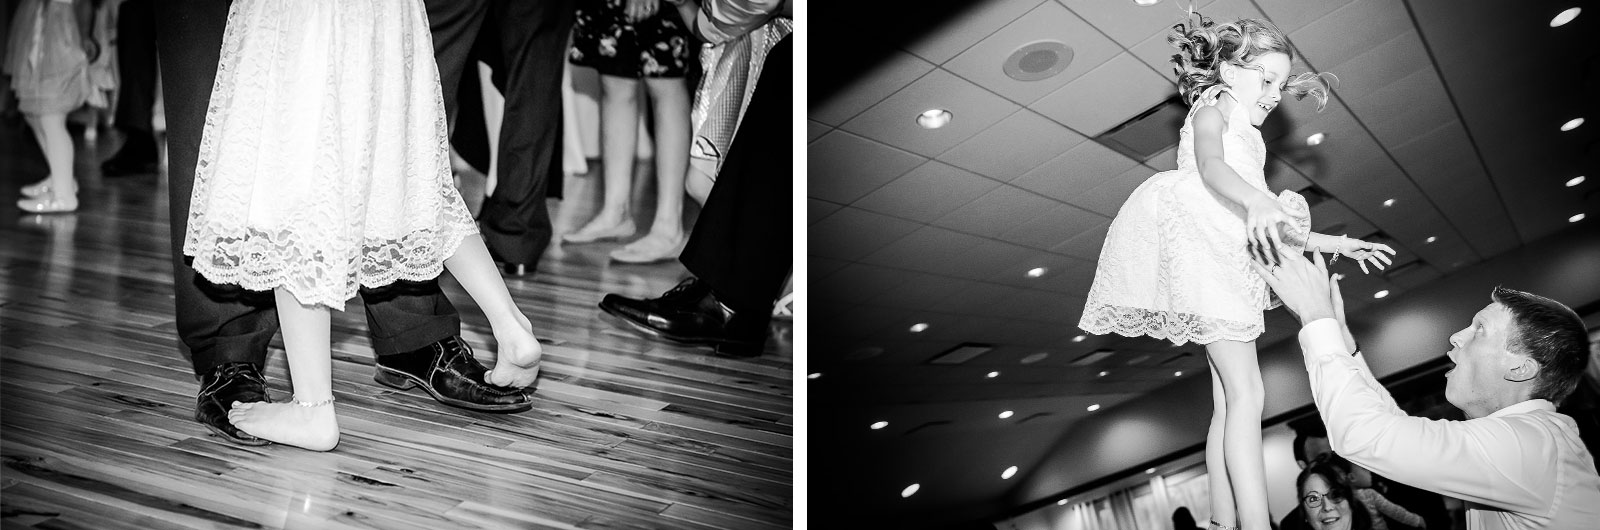 Eric_and_Christy_Photography_Blog_Katie_Travis_Wedding-65-66